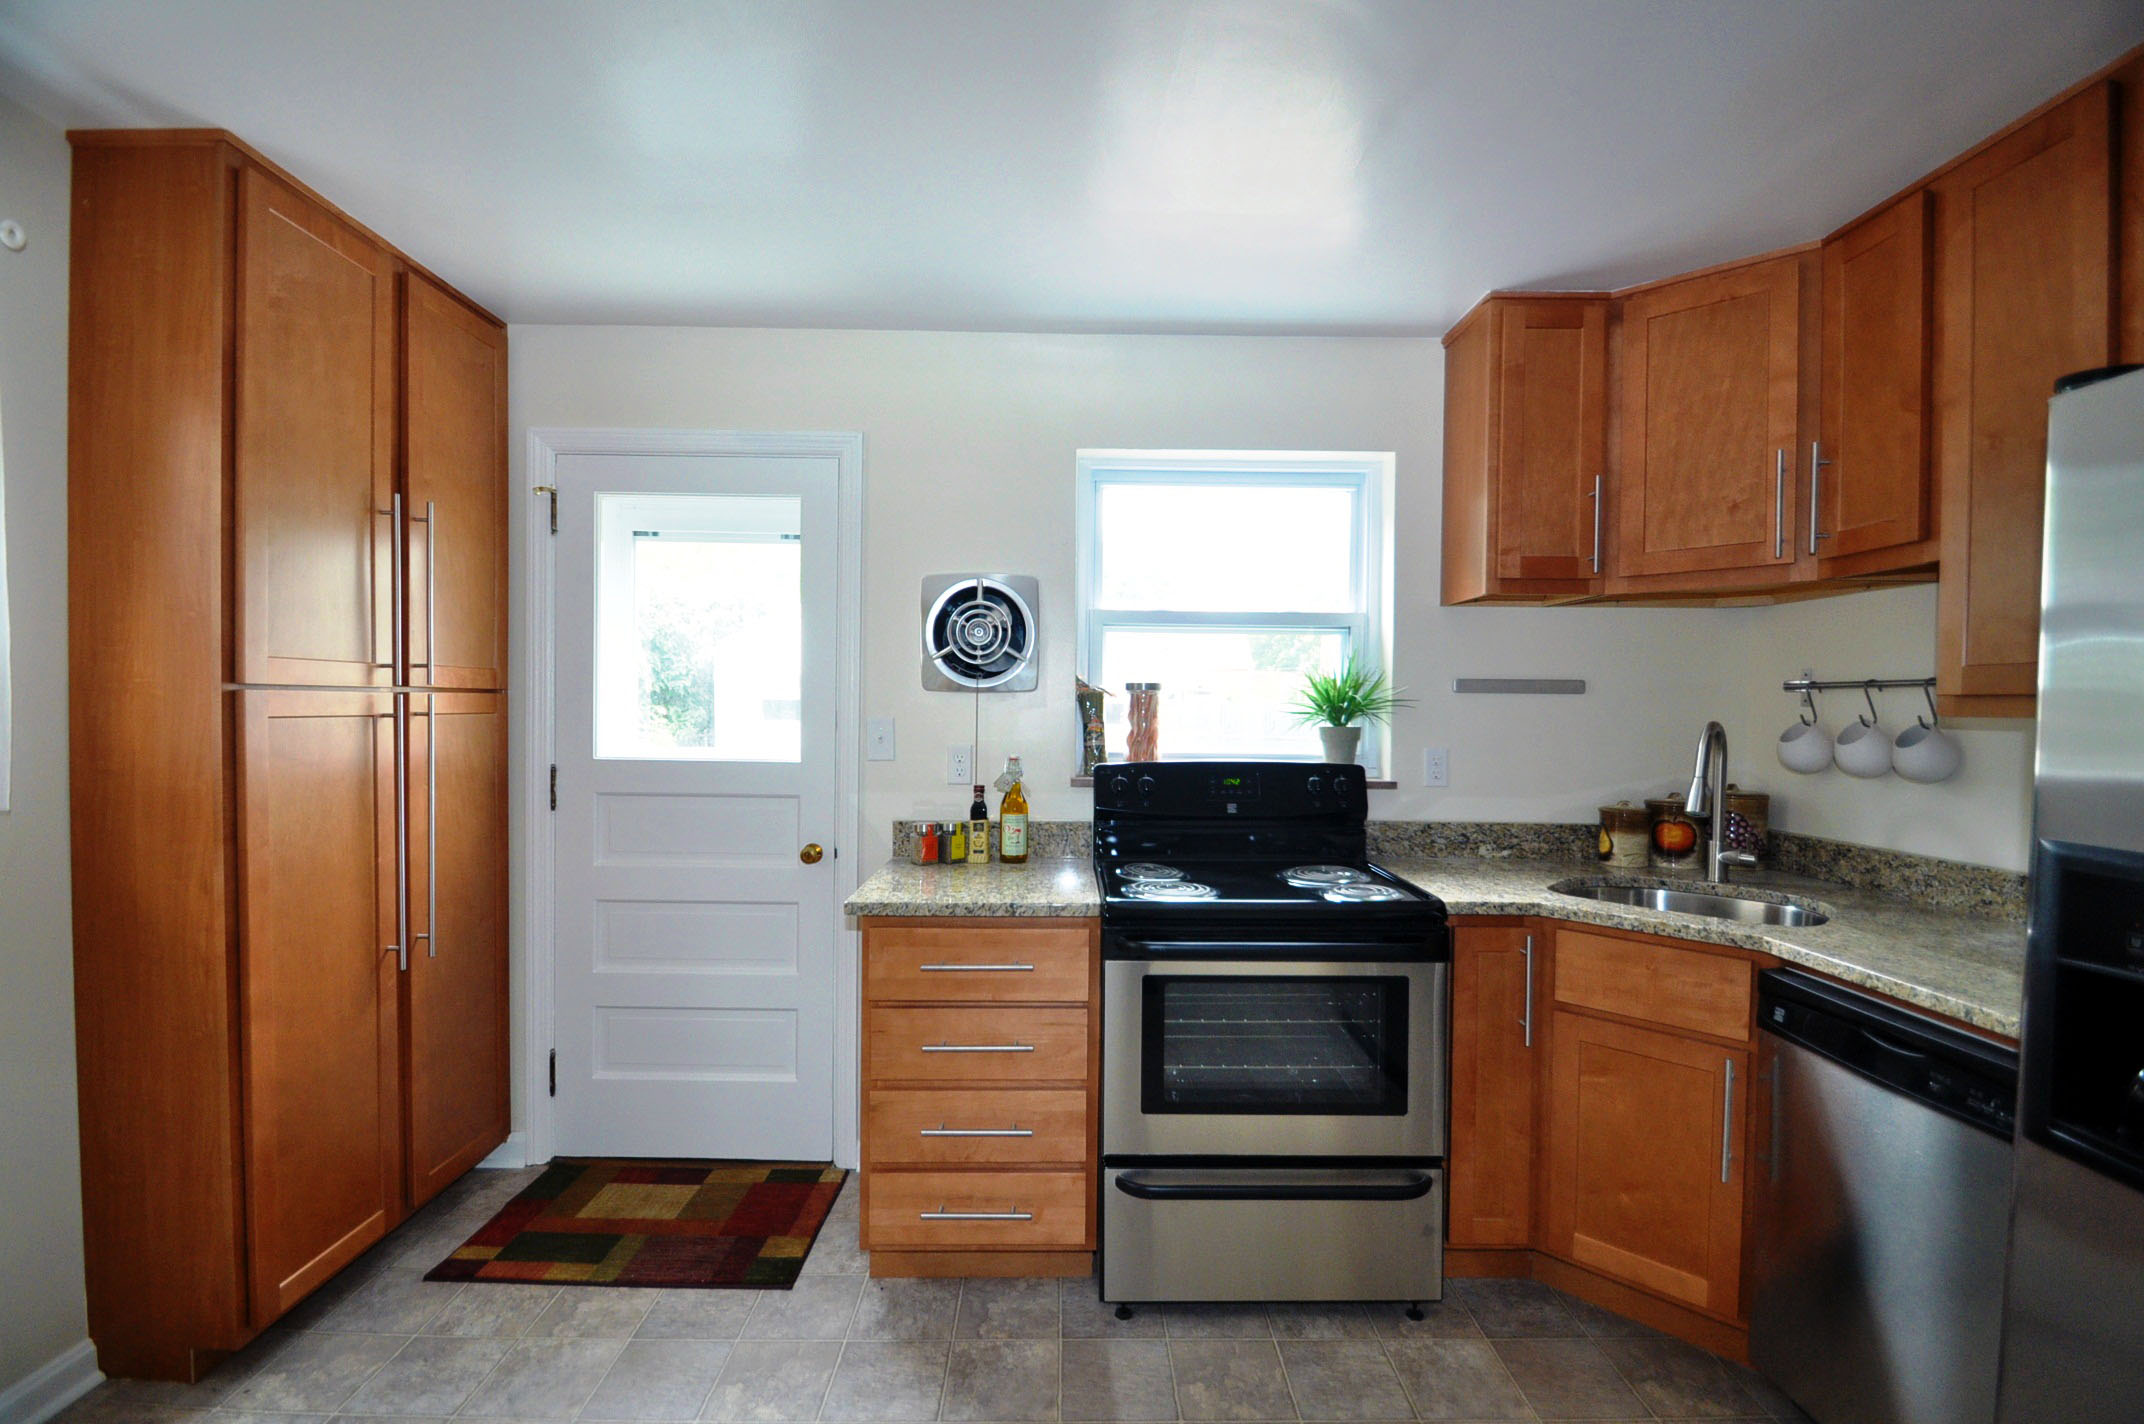 kitchen to outside.jpg